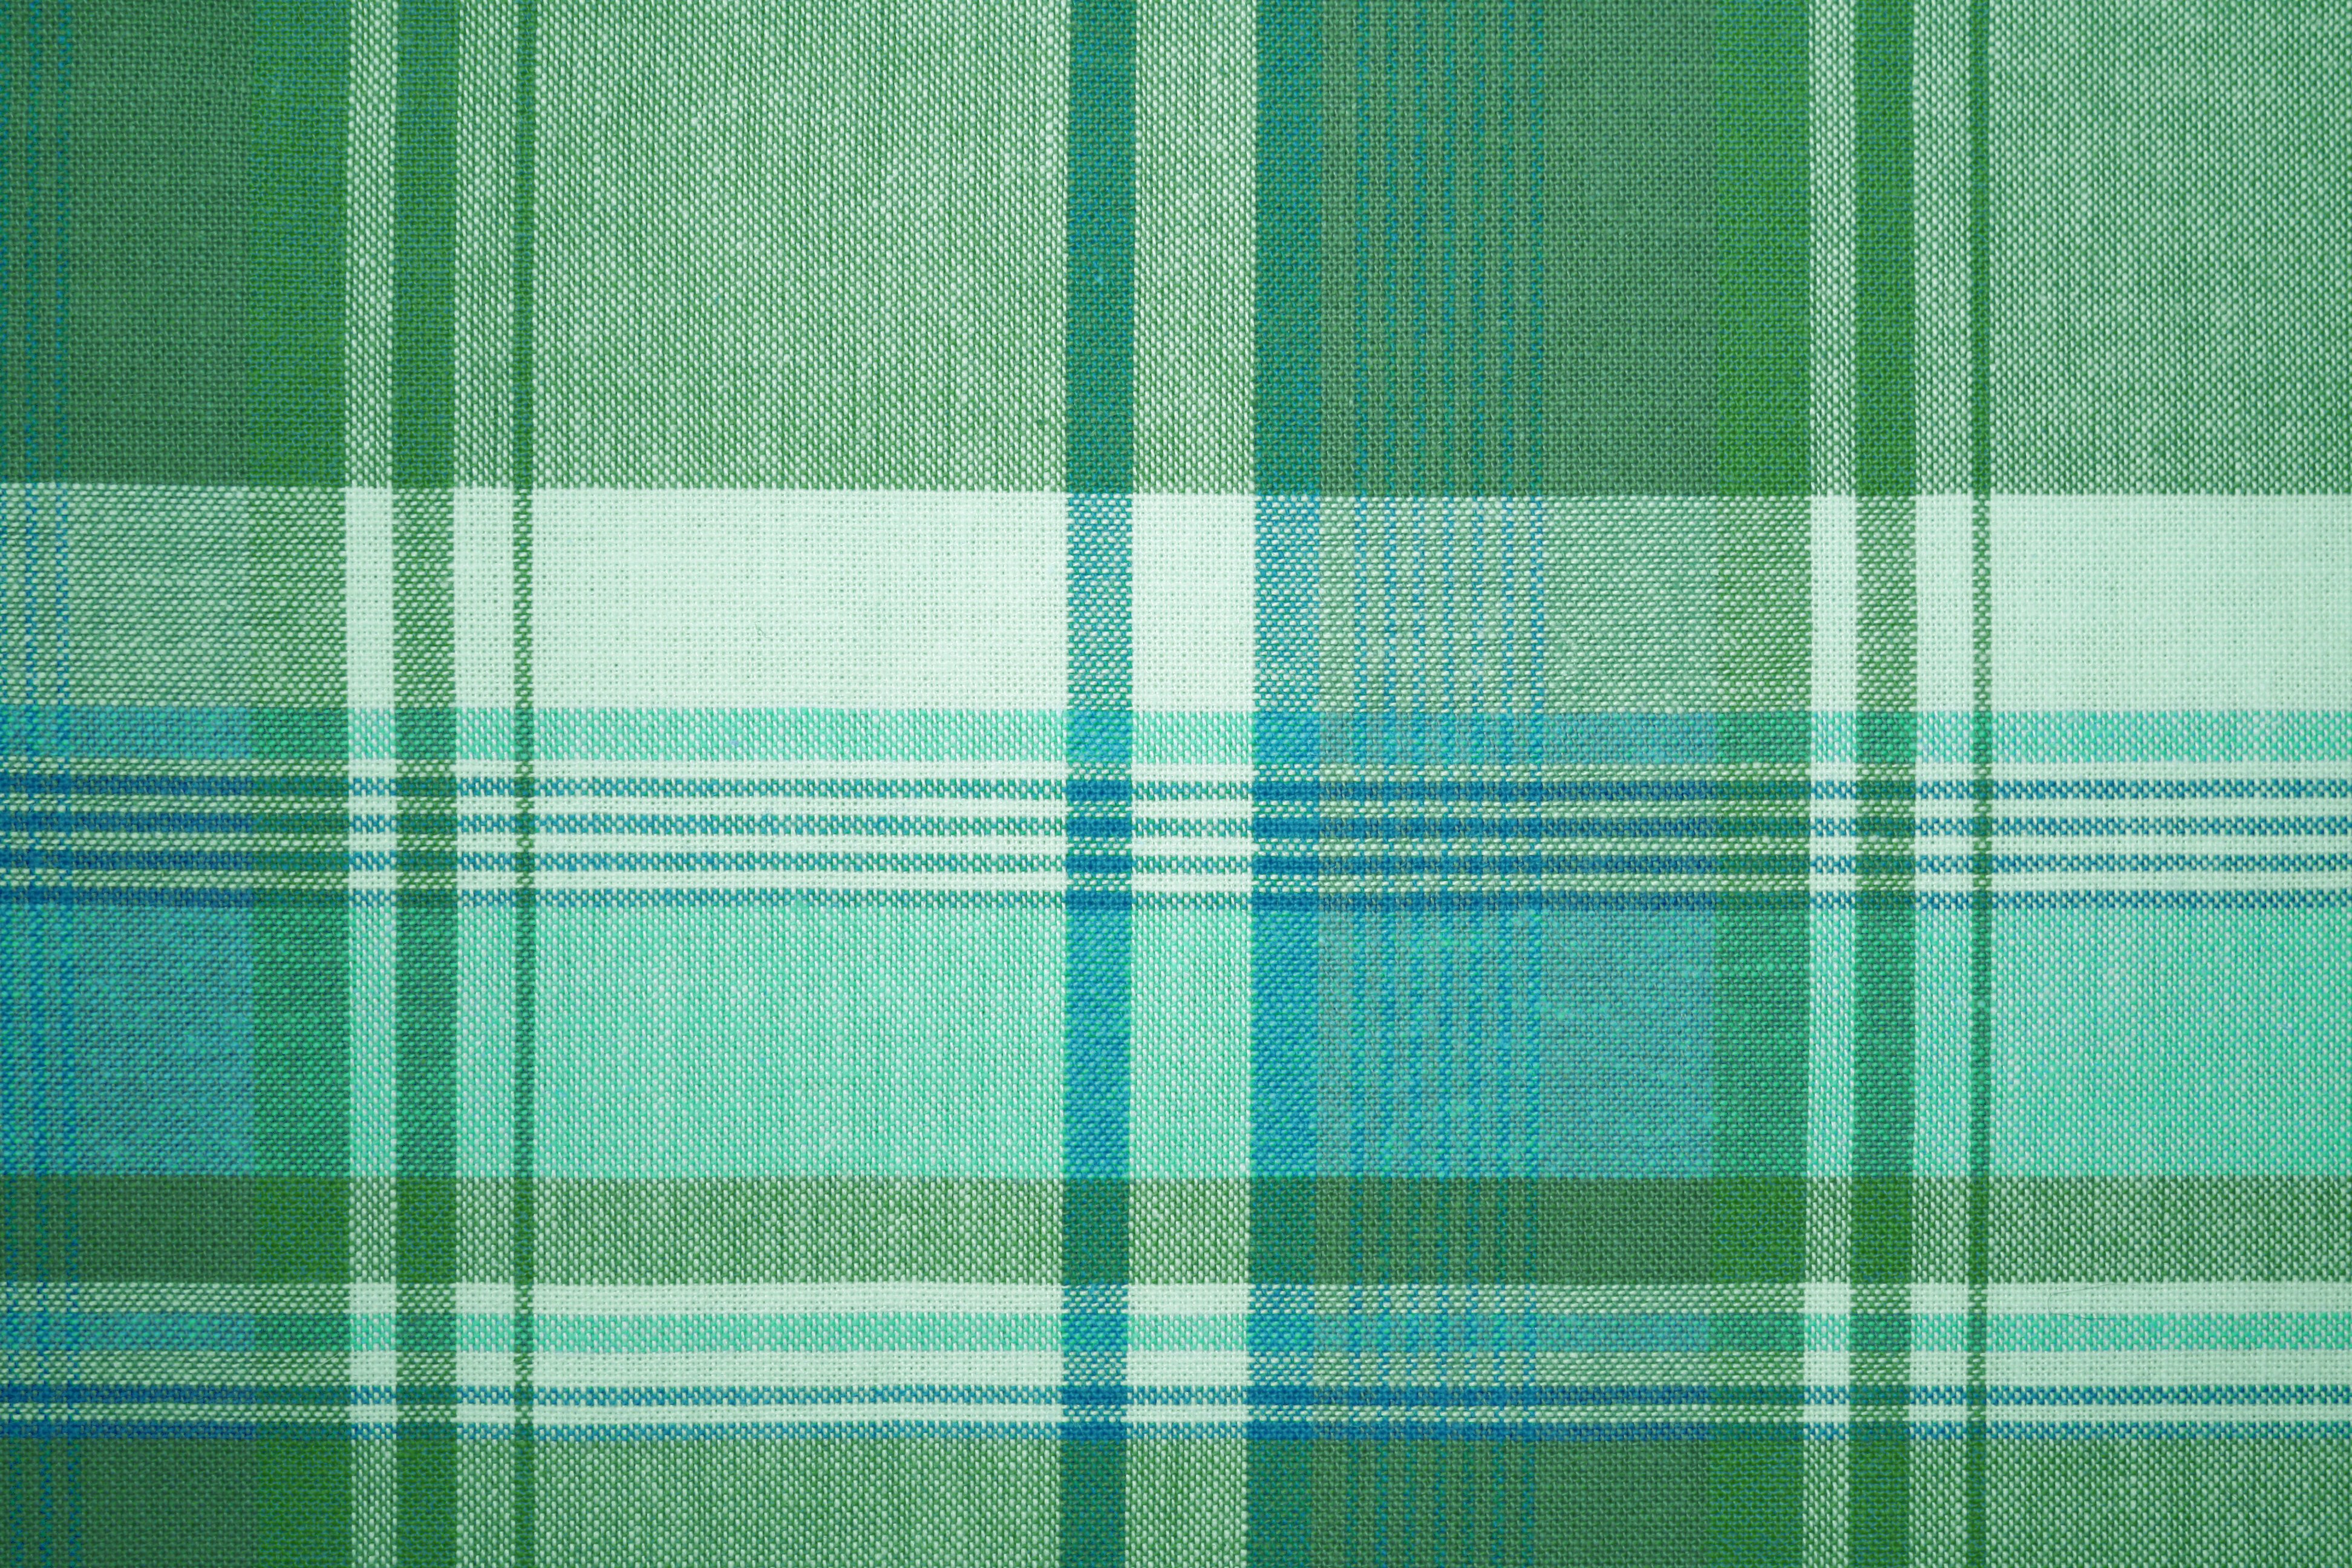 Green and turquoise plaid fabric texture picture free - Plaid bleu turquoise ...